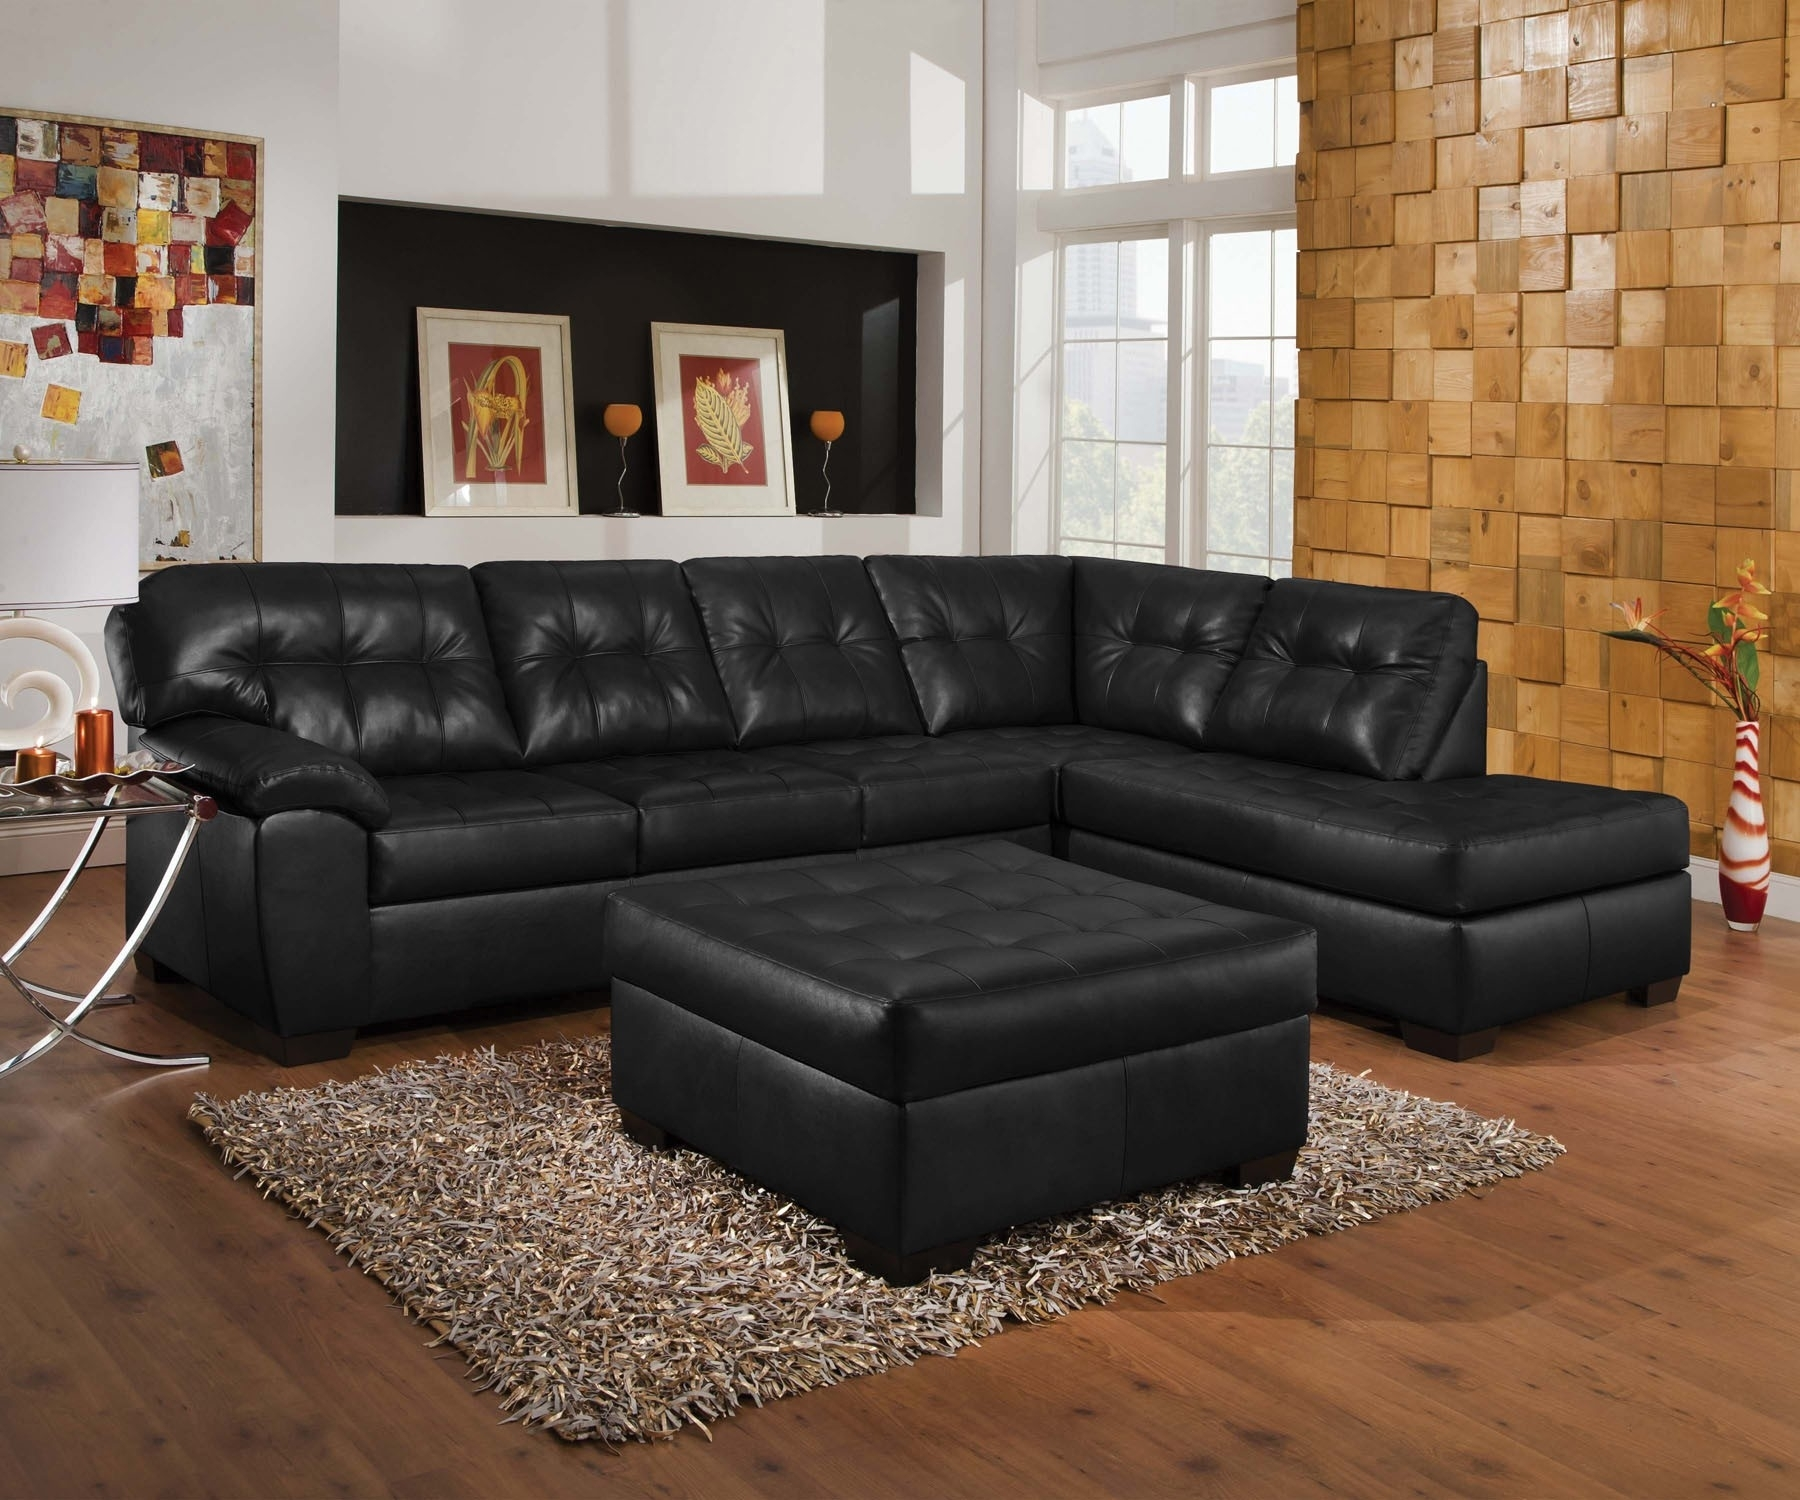 L Shaped Espresso Leather Recliner Sofa With Chaise In White Couches Pertaining To Sectional Sofas At Bangalore (View 8 of 10)